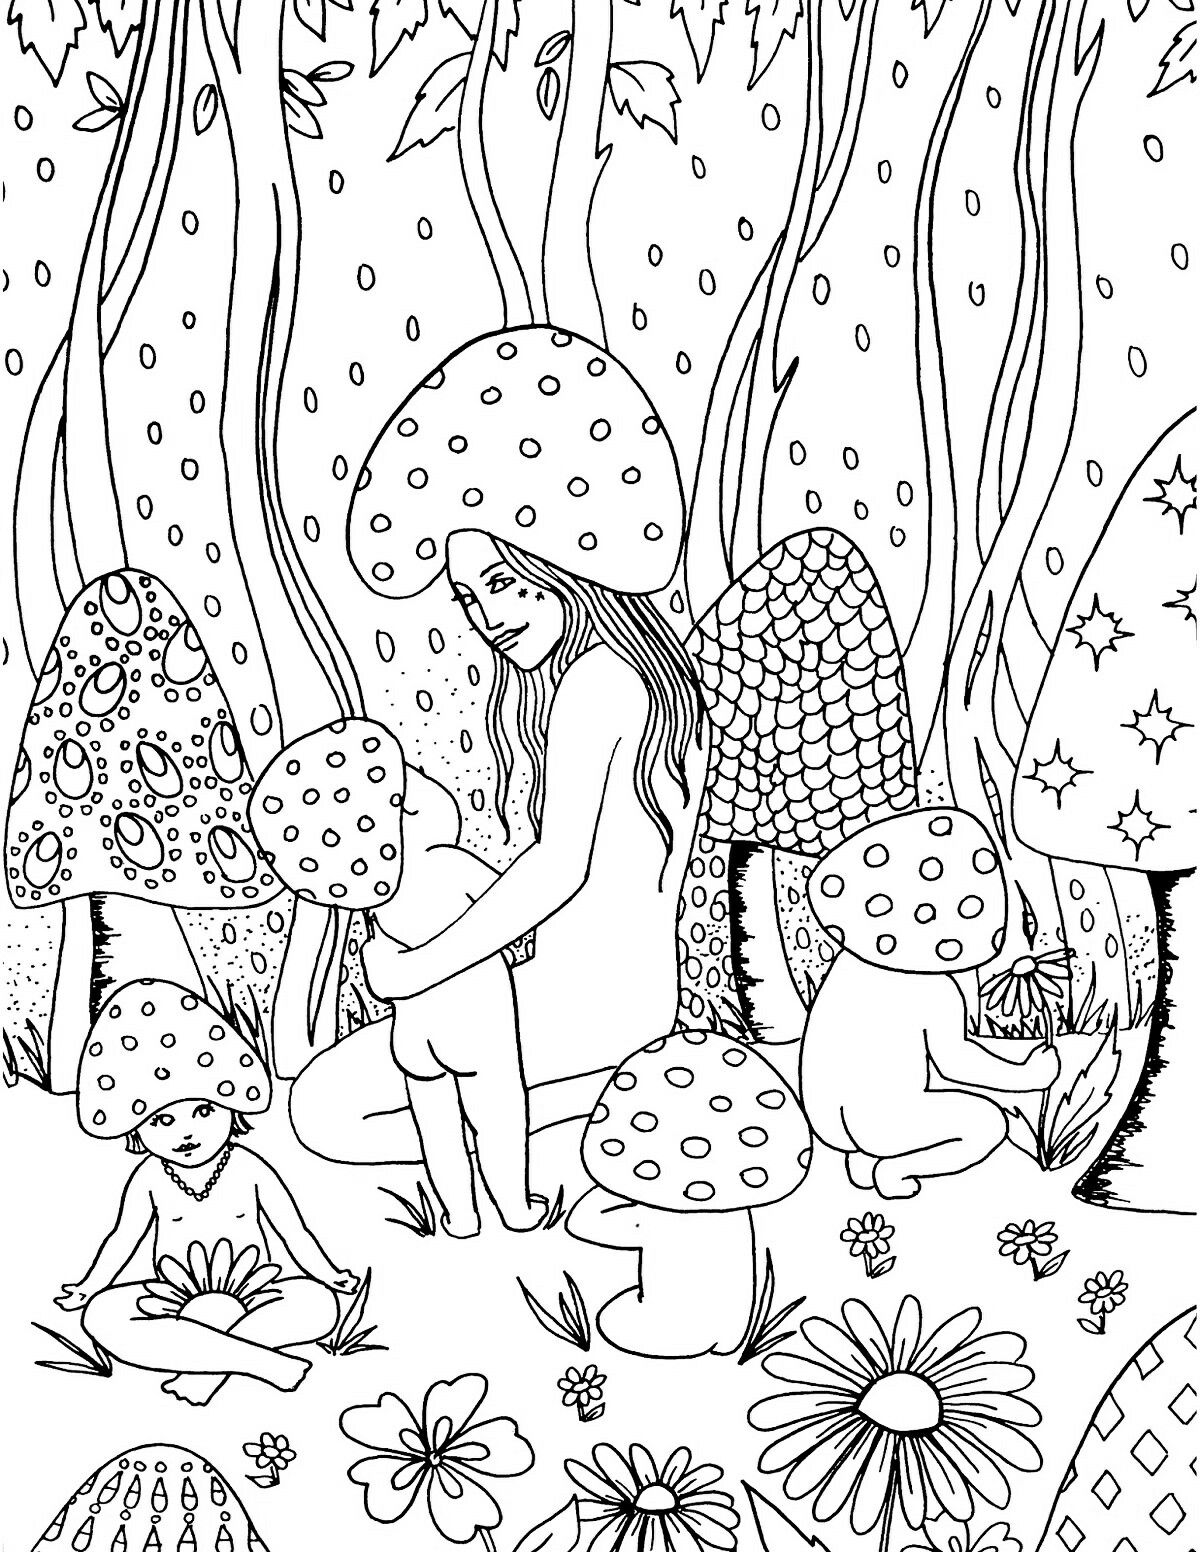 Pin By Elisabeth Quisenberry On Color Her Pretty Coloring Pages Swear Word Coloring Book Words Coloring Book [ 1552 x 1200 Pixel ]